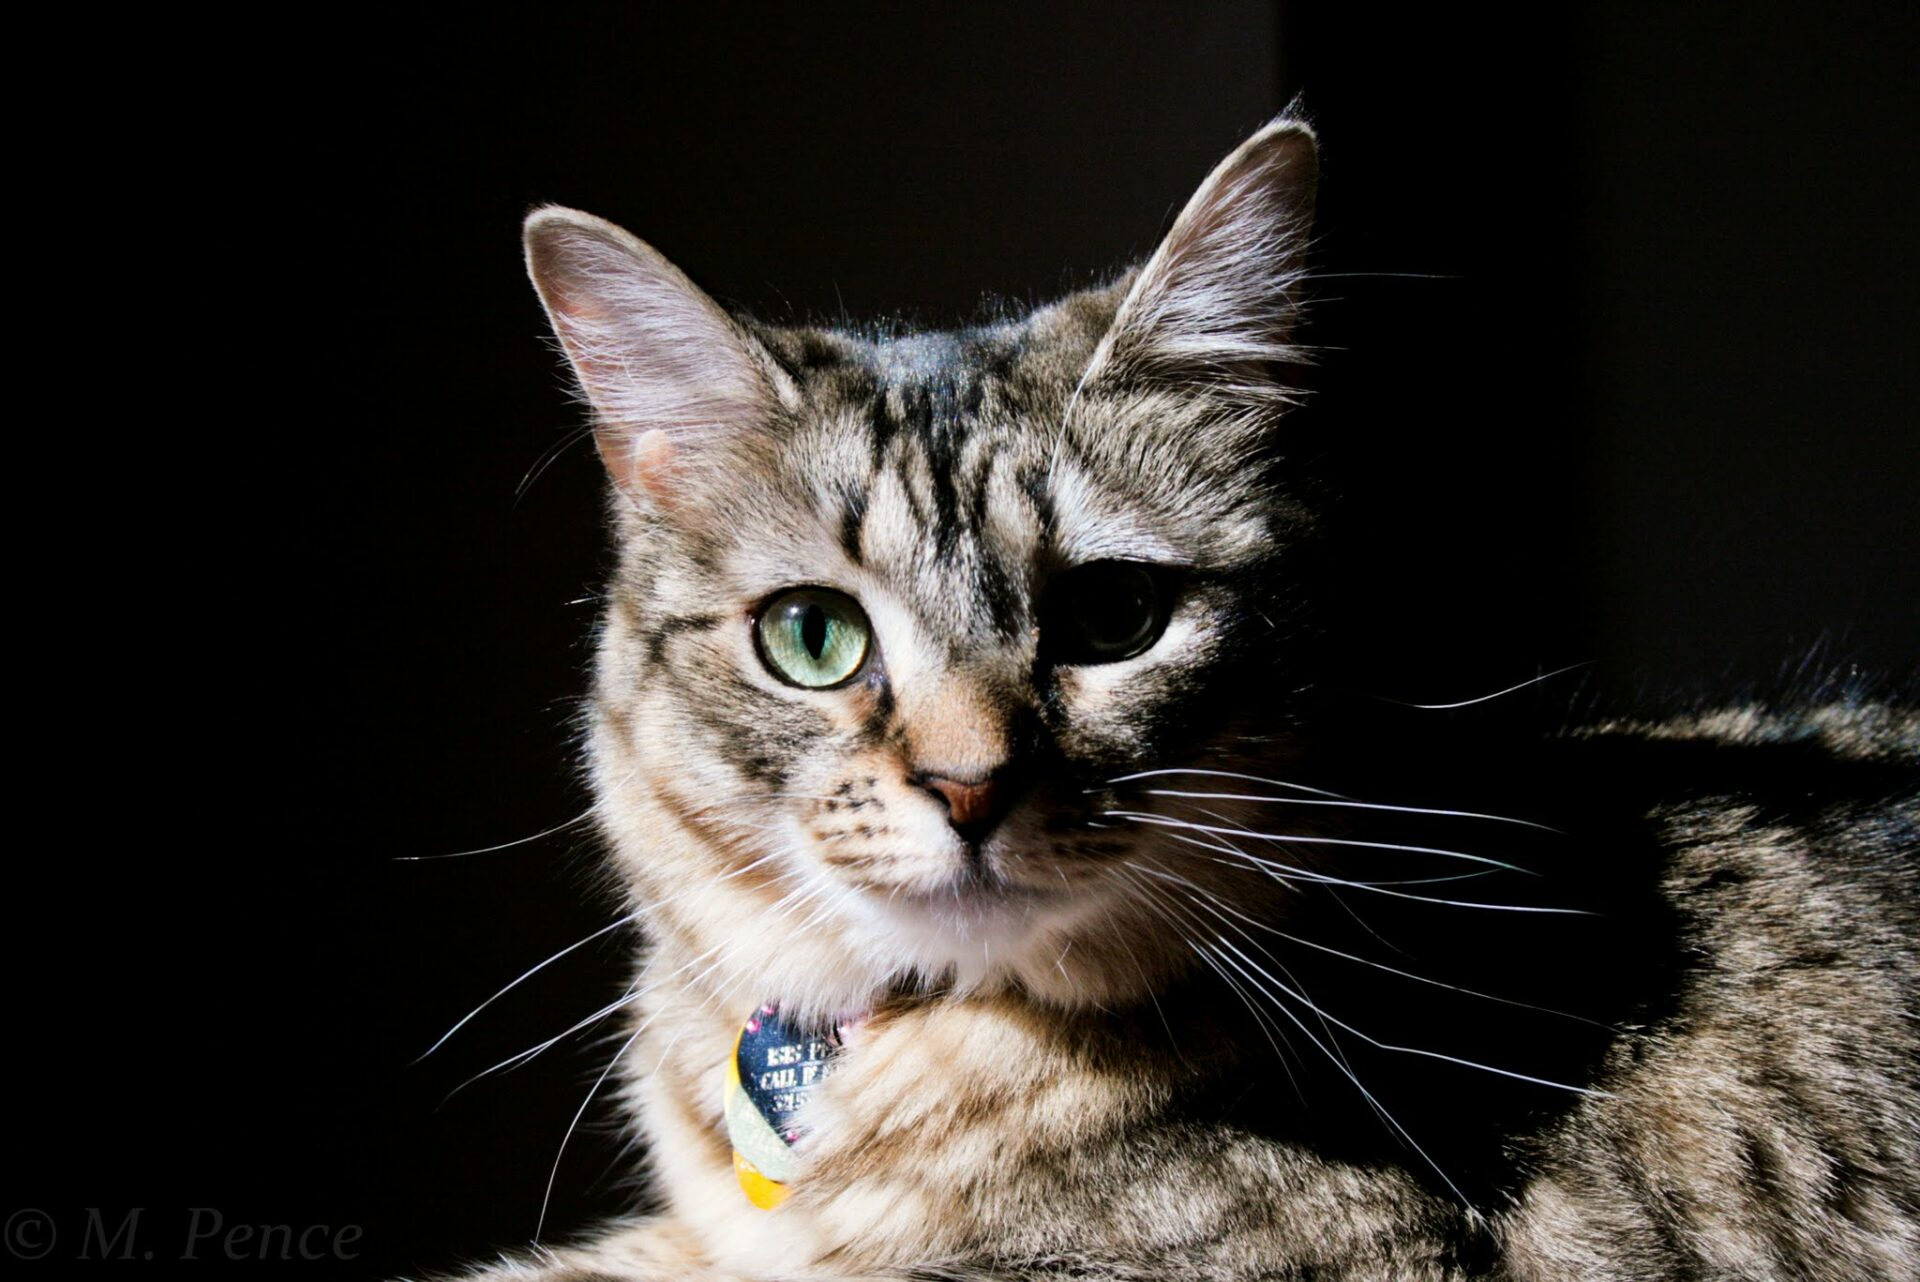 Photo of a cat in the sun near blinds, staring into the camera.